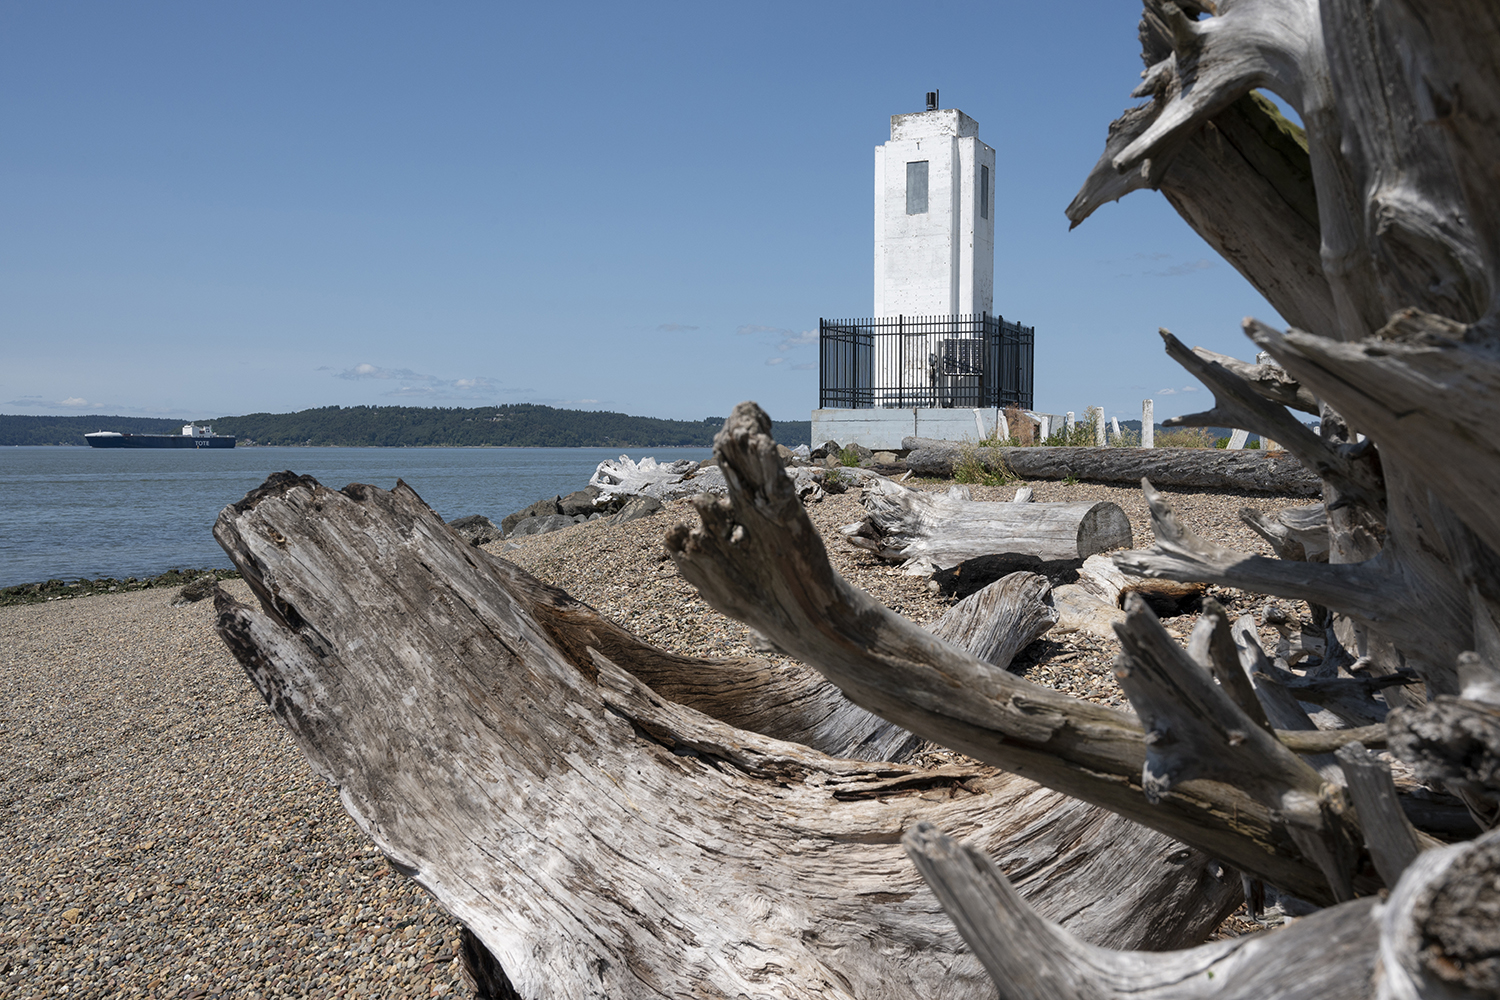 Fans of art deco should take a quick trip down to Tacoma to visit Browns Point Lighthouse situated on Commencement Bay. But the design wasn't always this modern. In 1887, the lighthouse was simply constructed from a 12-foot white post topped with a white light lantern lens. (Image: Rachael Jones / Seattle Refined)